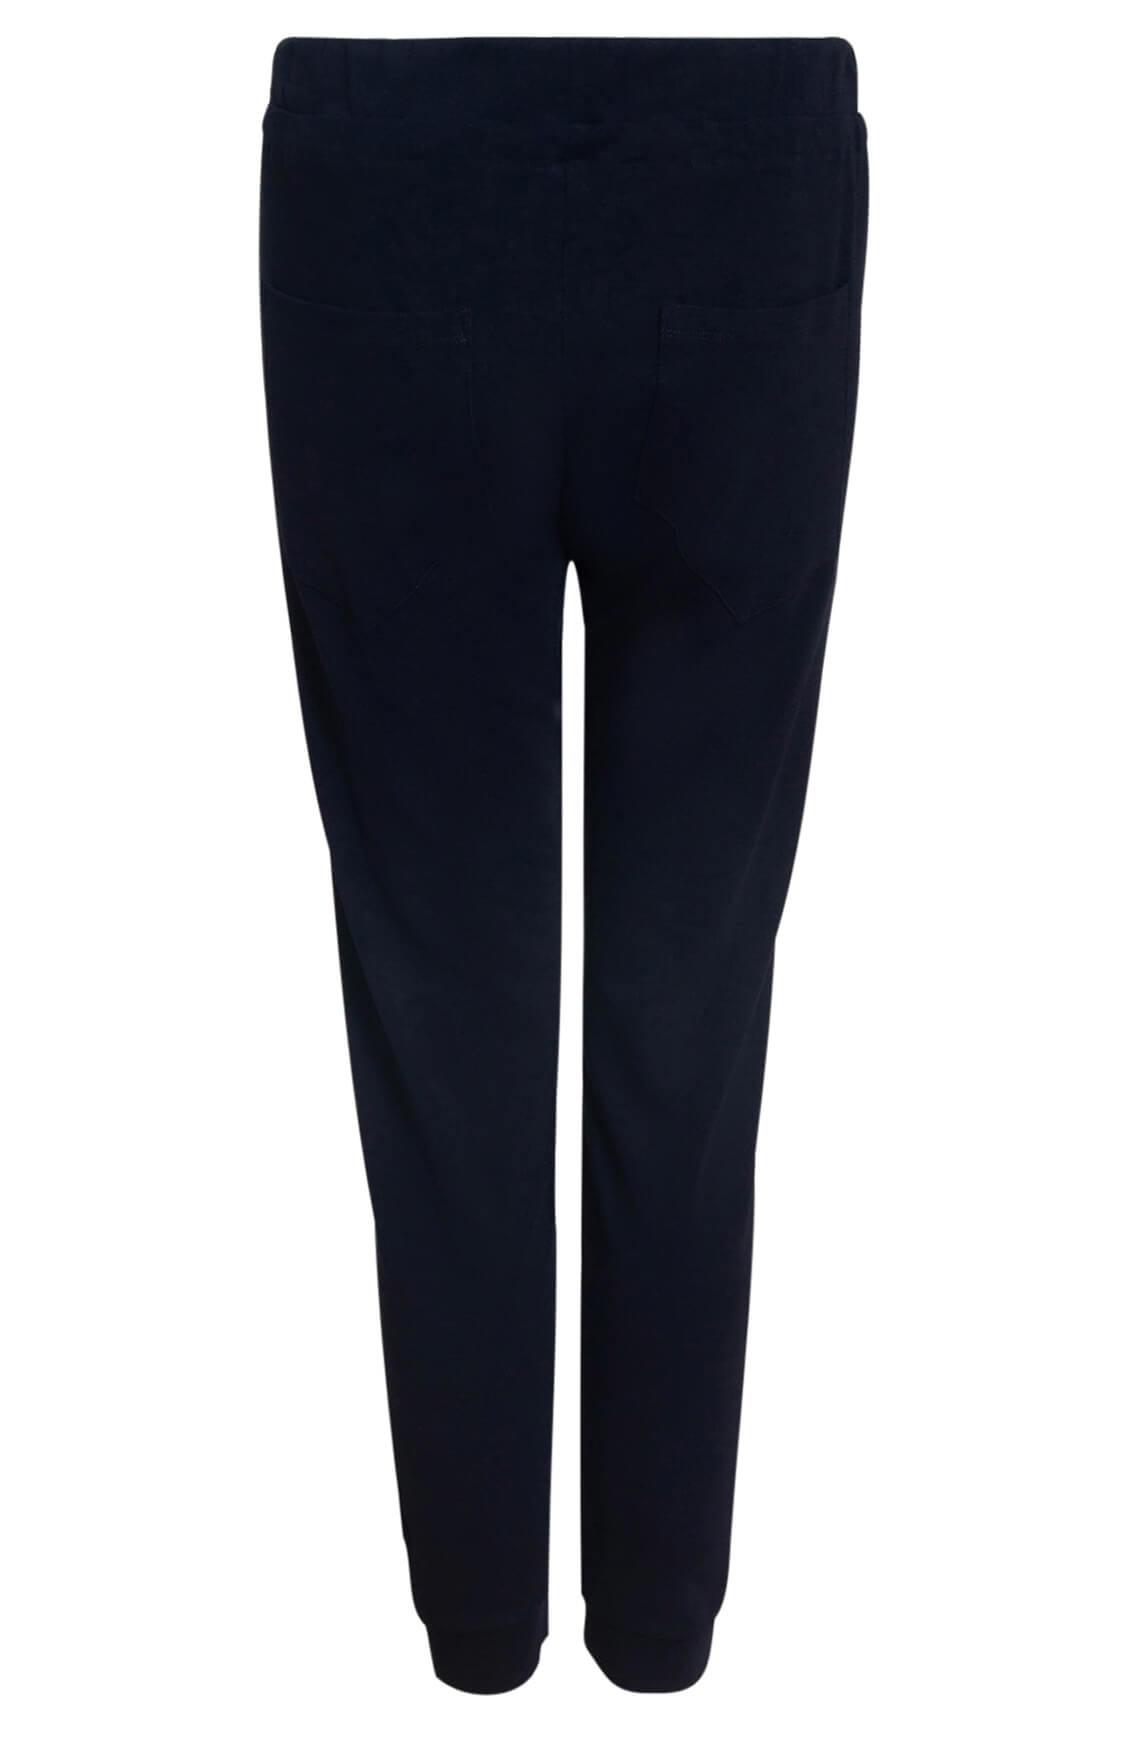 10 Days Dames Chino jogger zwart